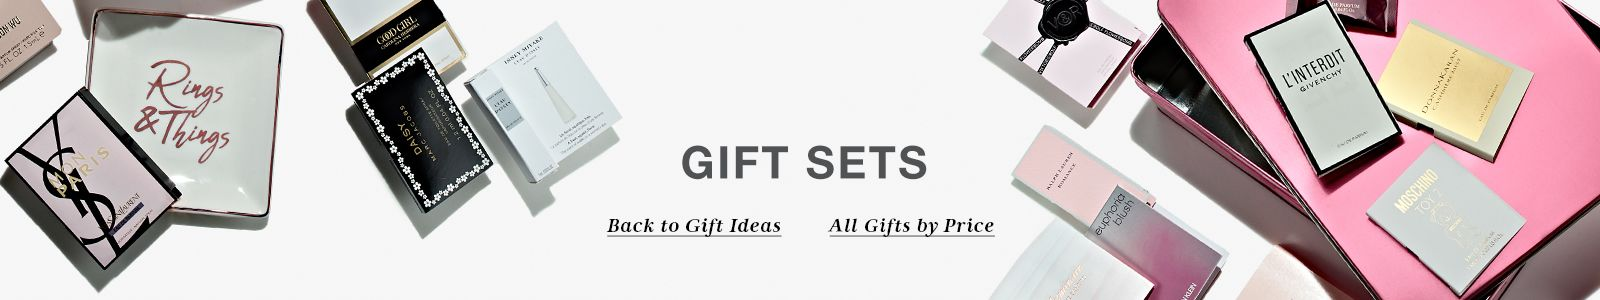 Gift Sets, Back to Gift Ideas, All Gifts by Price